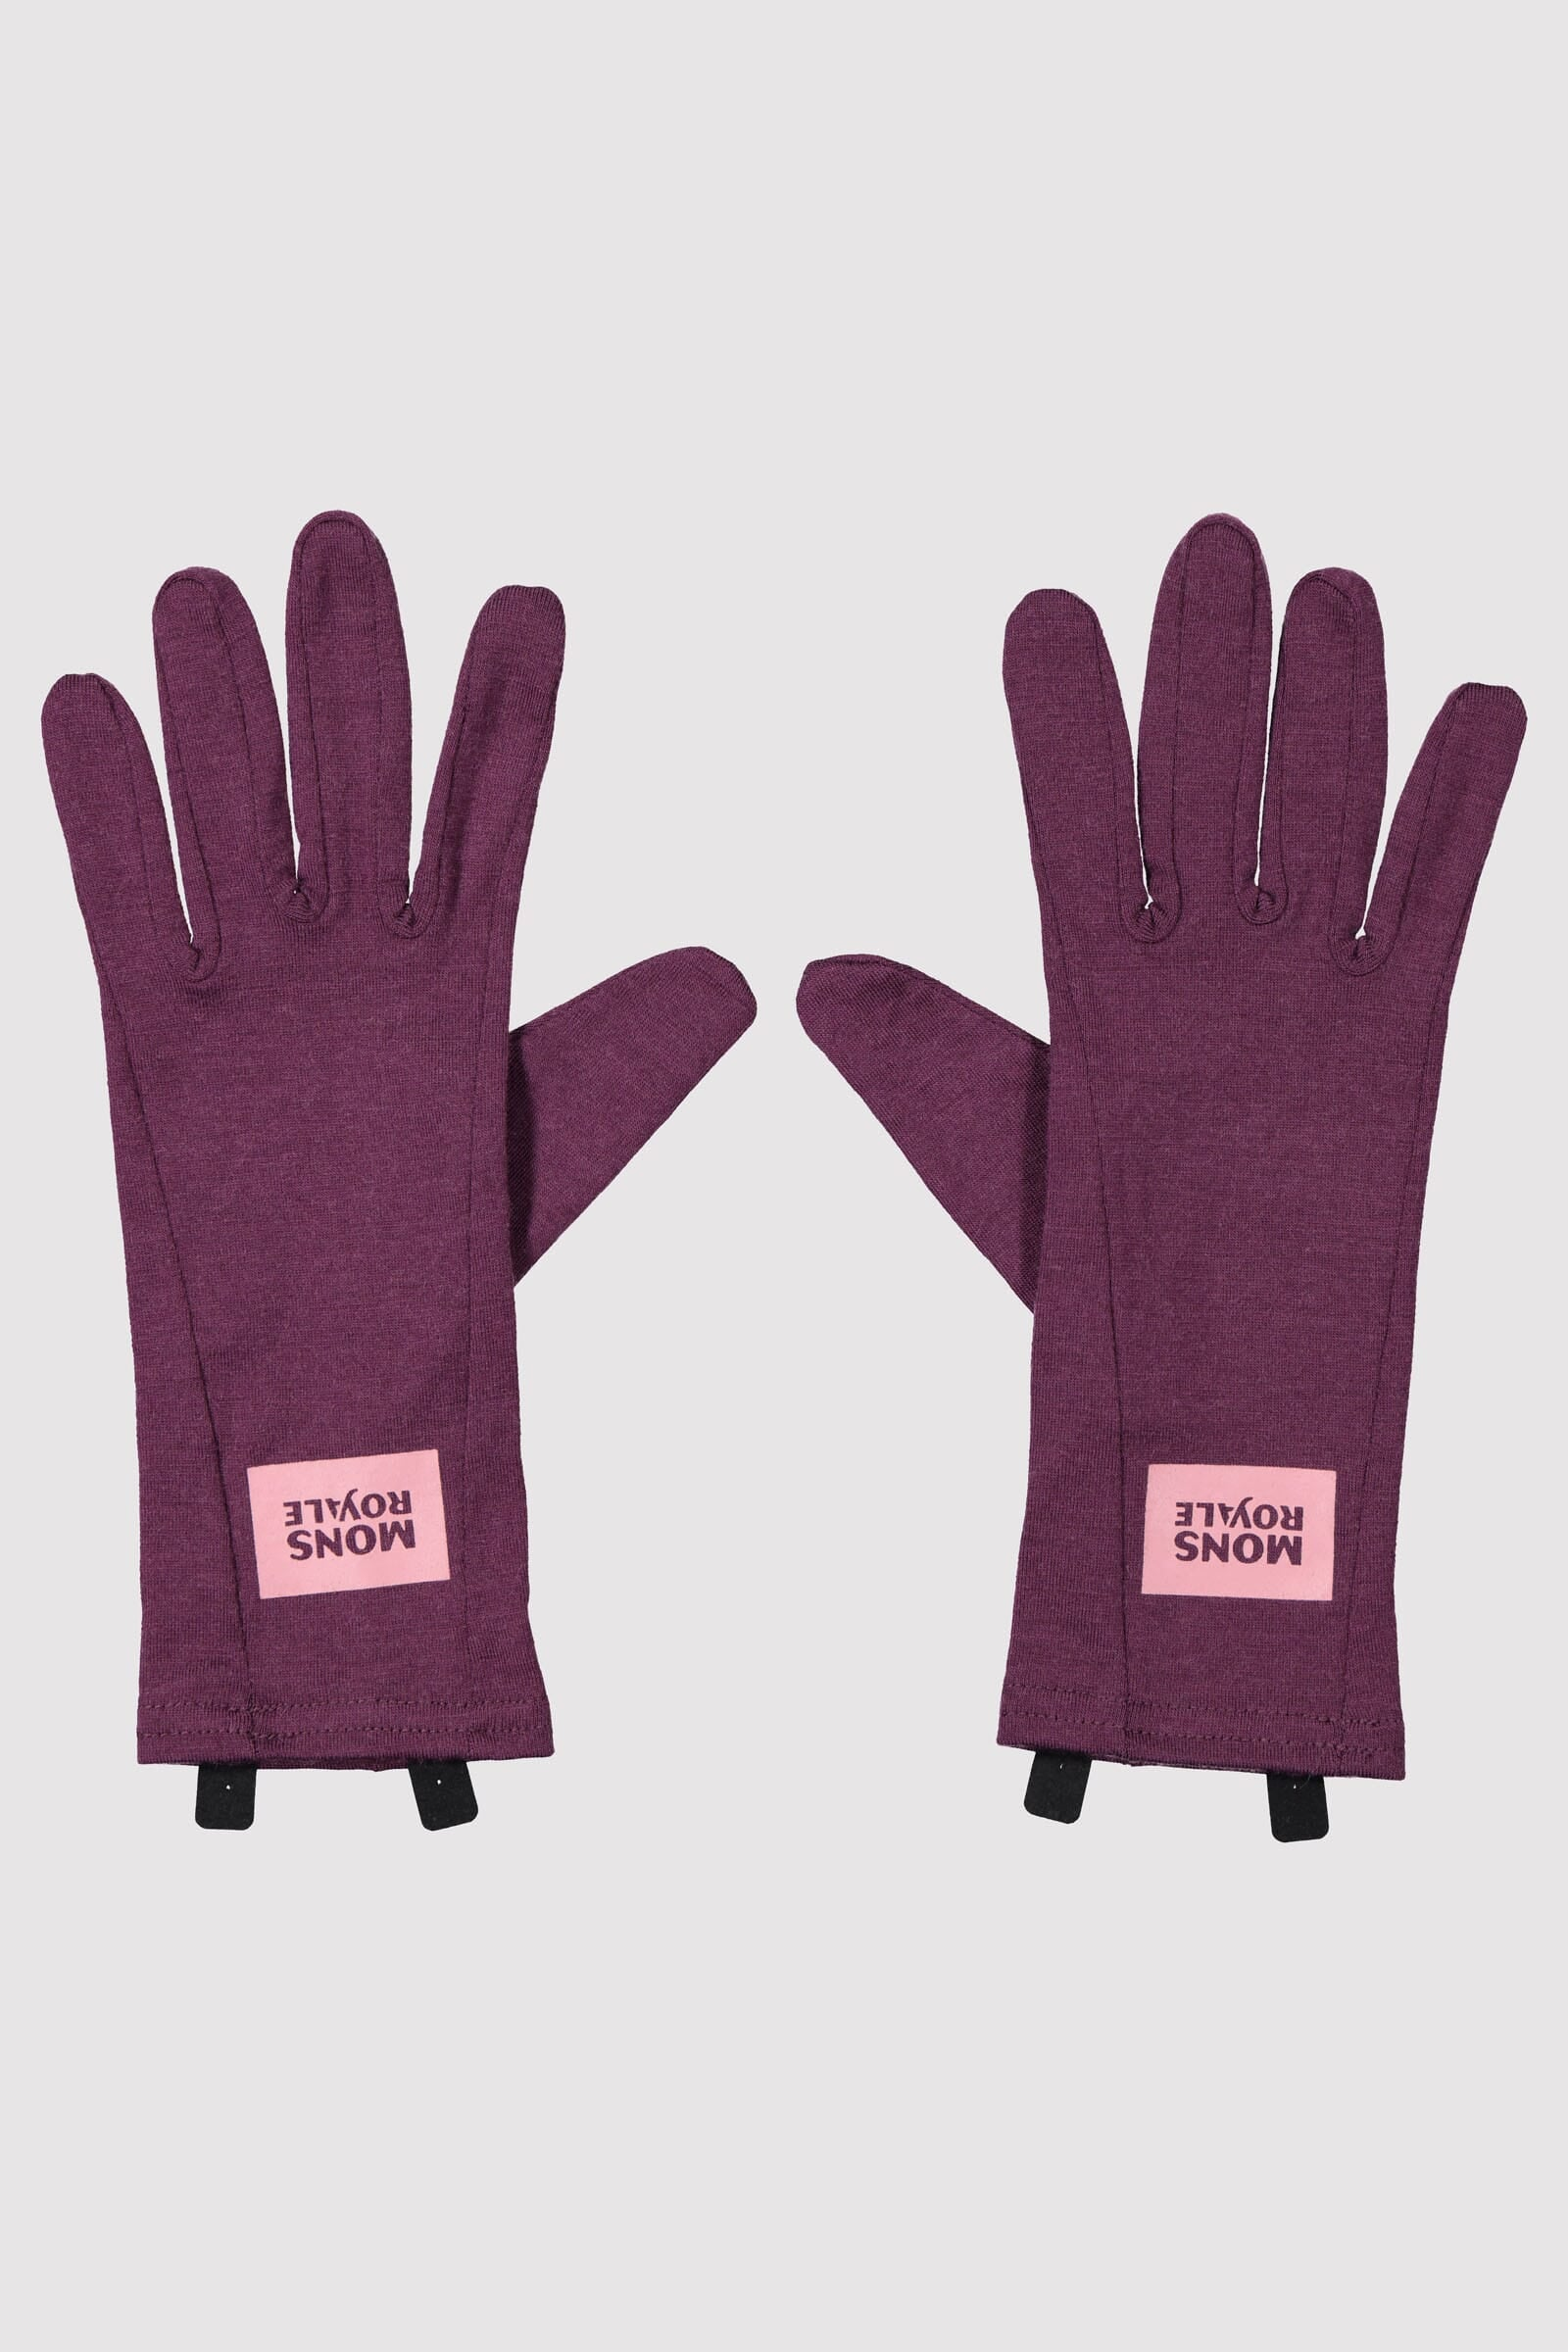 Cold Days Glove Liner - Blackberry